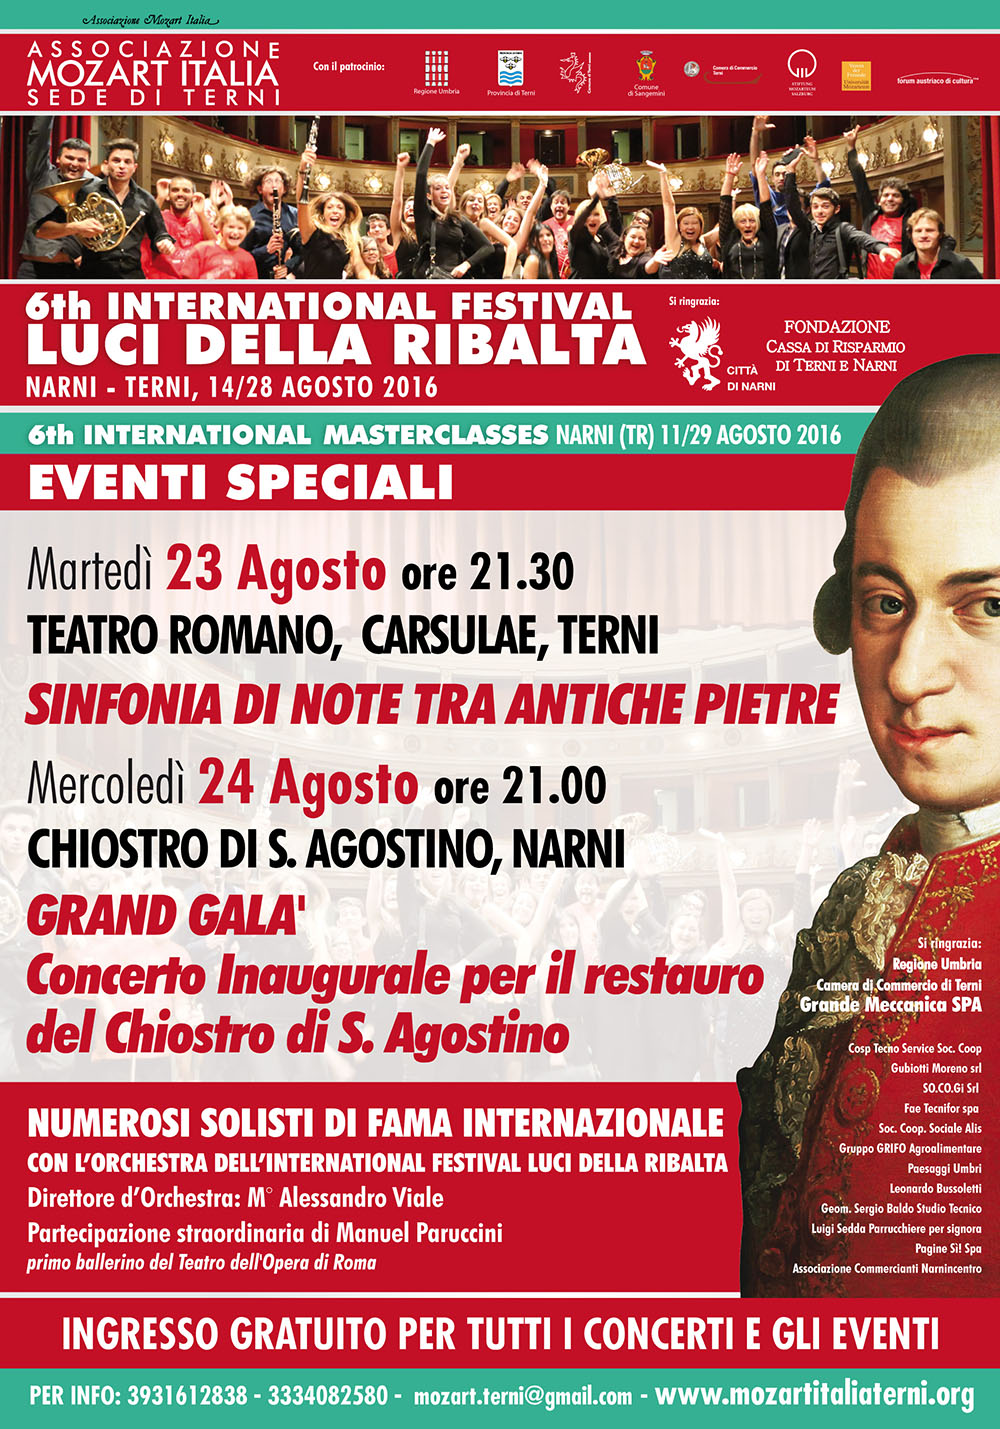 event speciali 2016